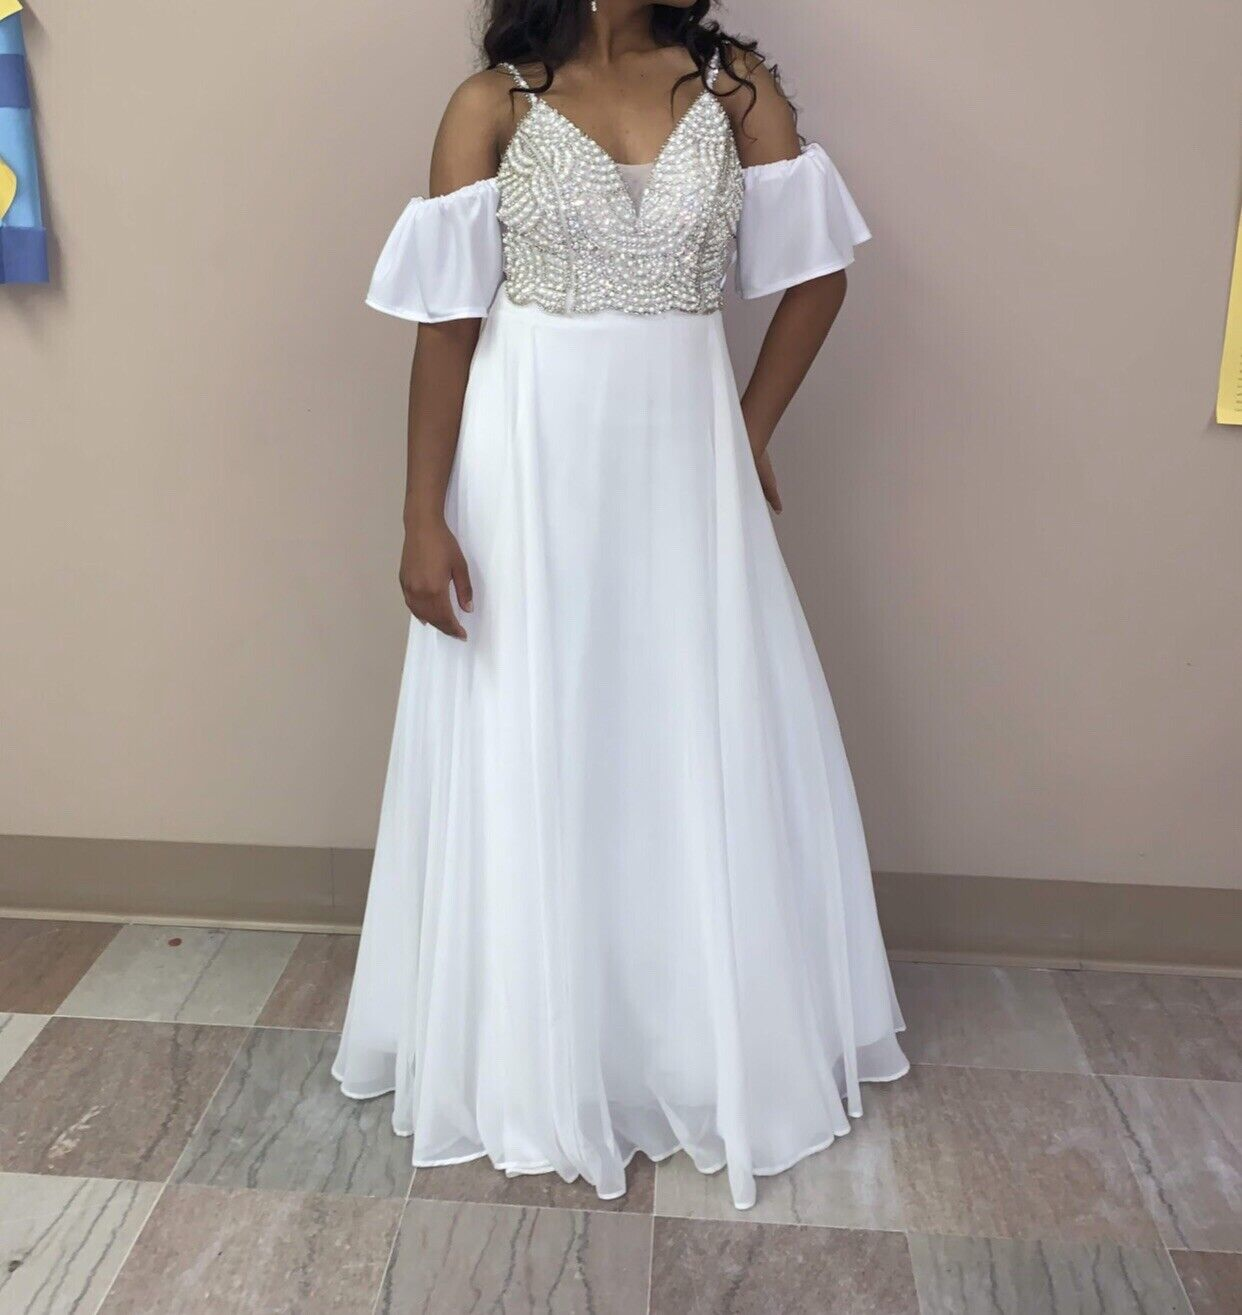 White pearl ball gown - image 2